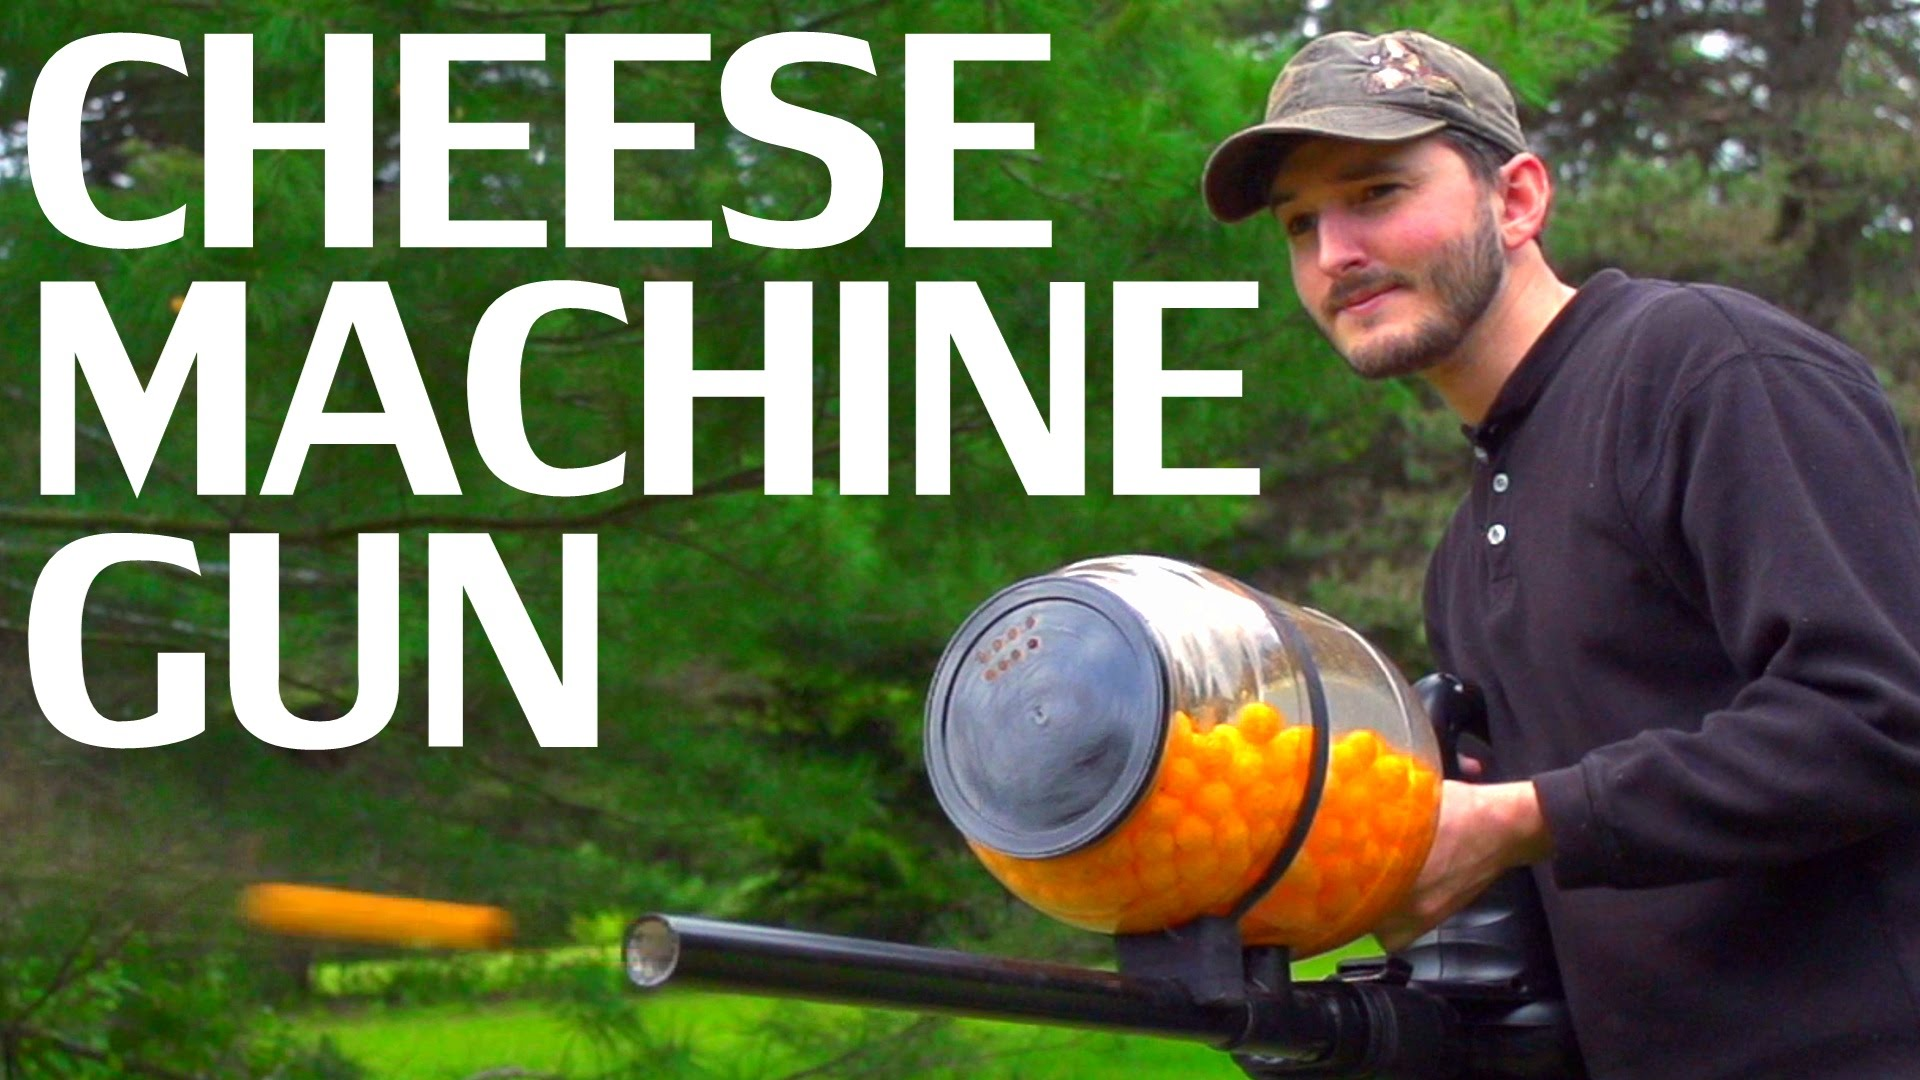 How To Make A Cheese Ball Machine Gun